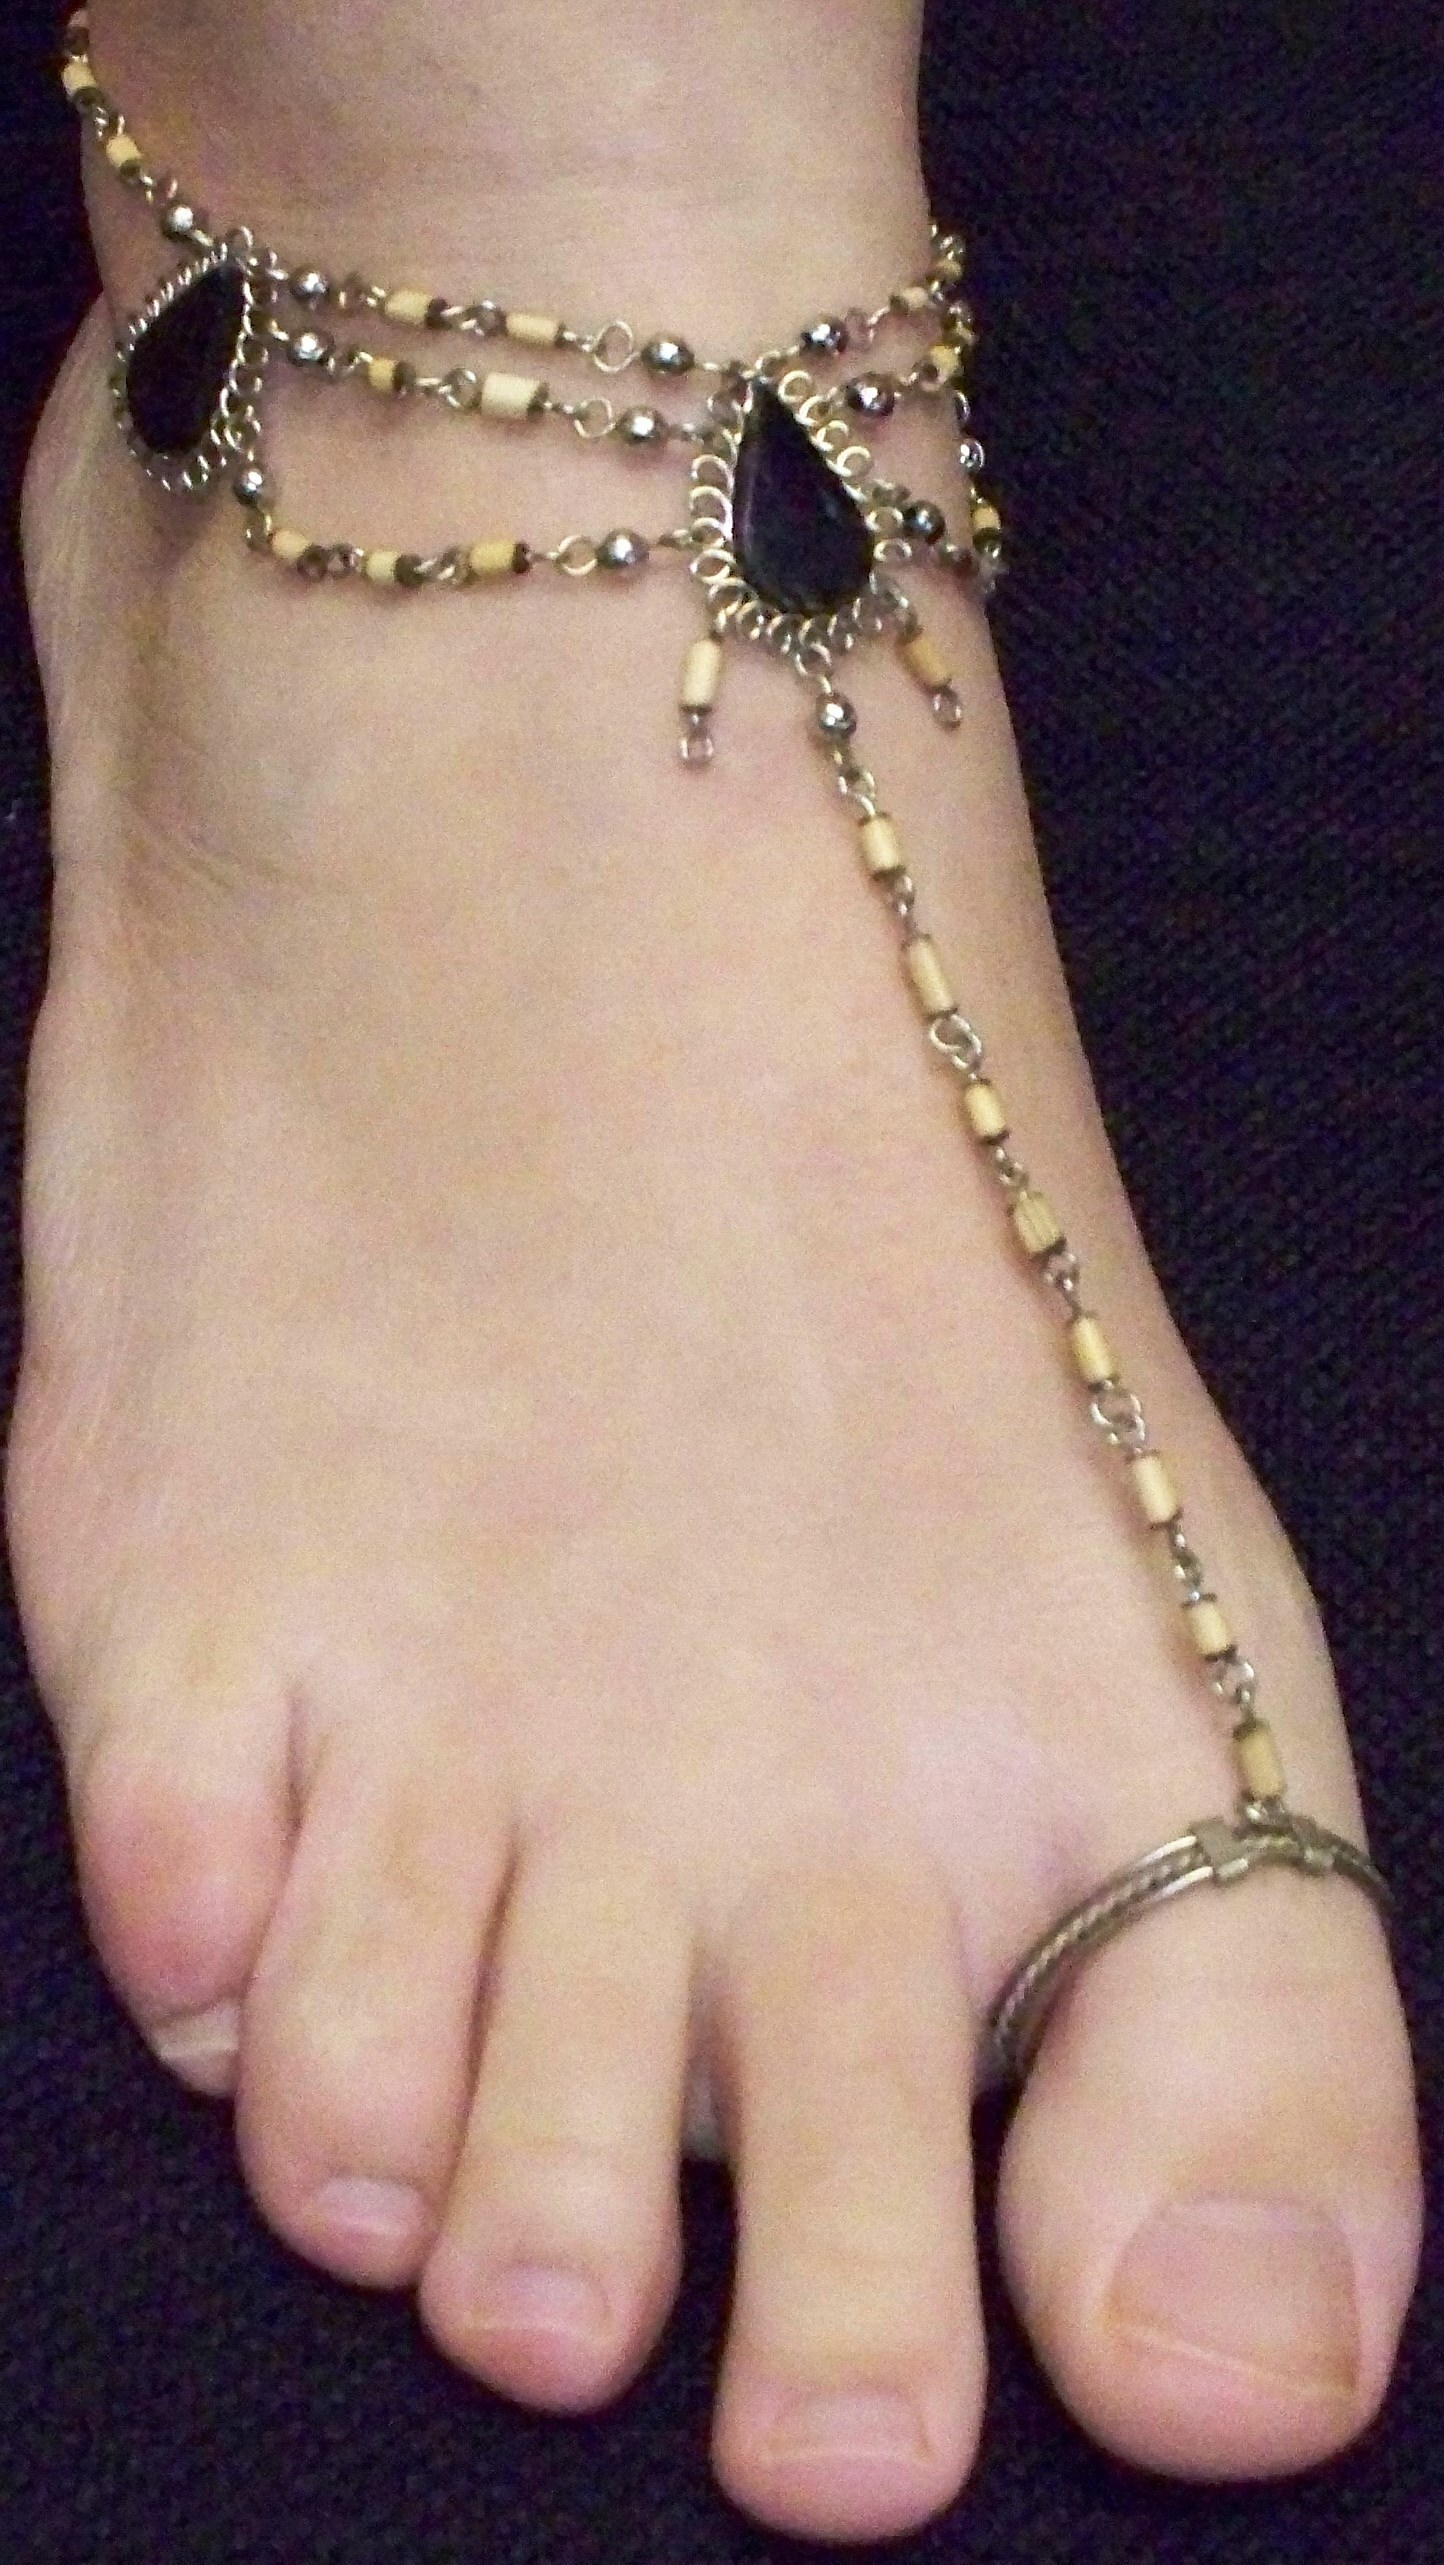 Anklet - Wikipedia